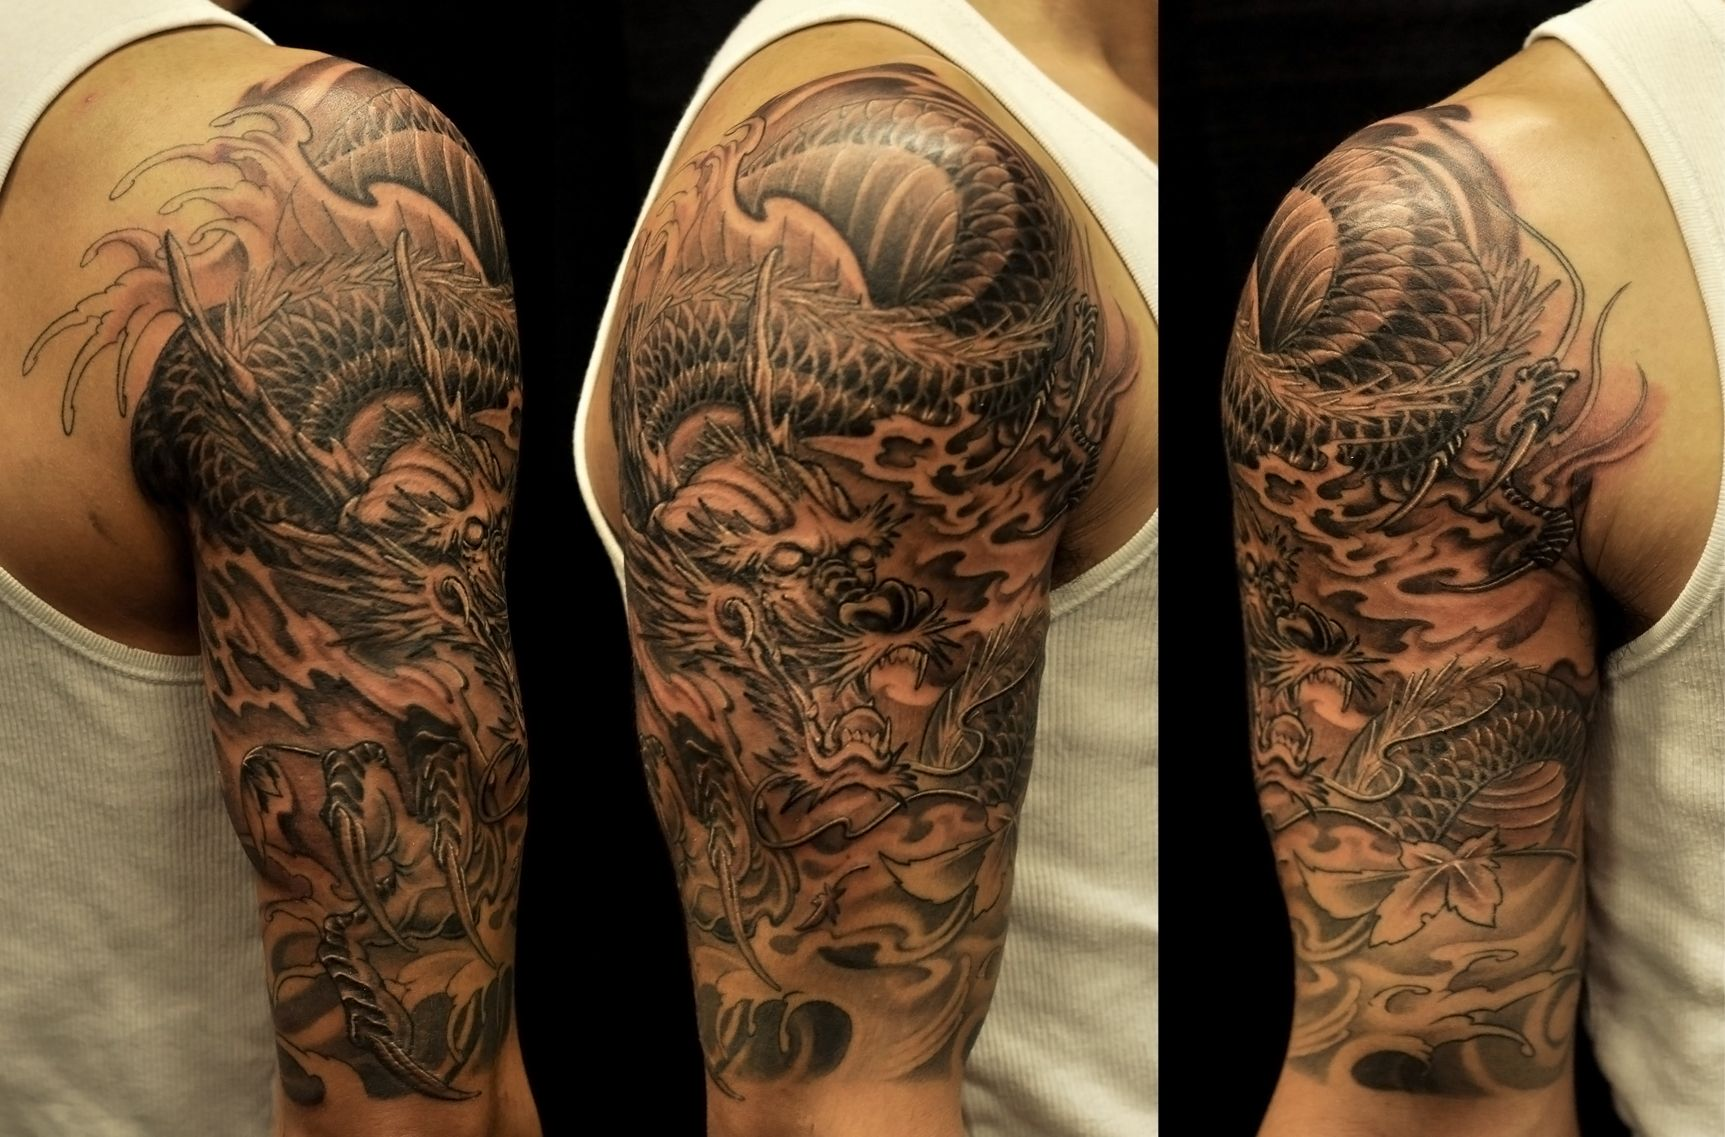 Half Sleeves Tattoo Collection From Dragon Tattoo Ideas Description From Malemodelspicture N Dragon Sleeve Tattoos African Sleeve Tattoo Tattoo Sleeve Designs